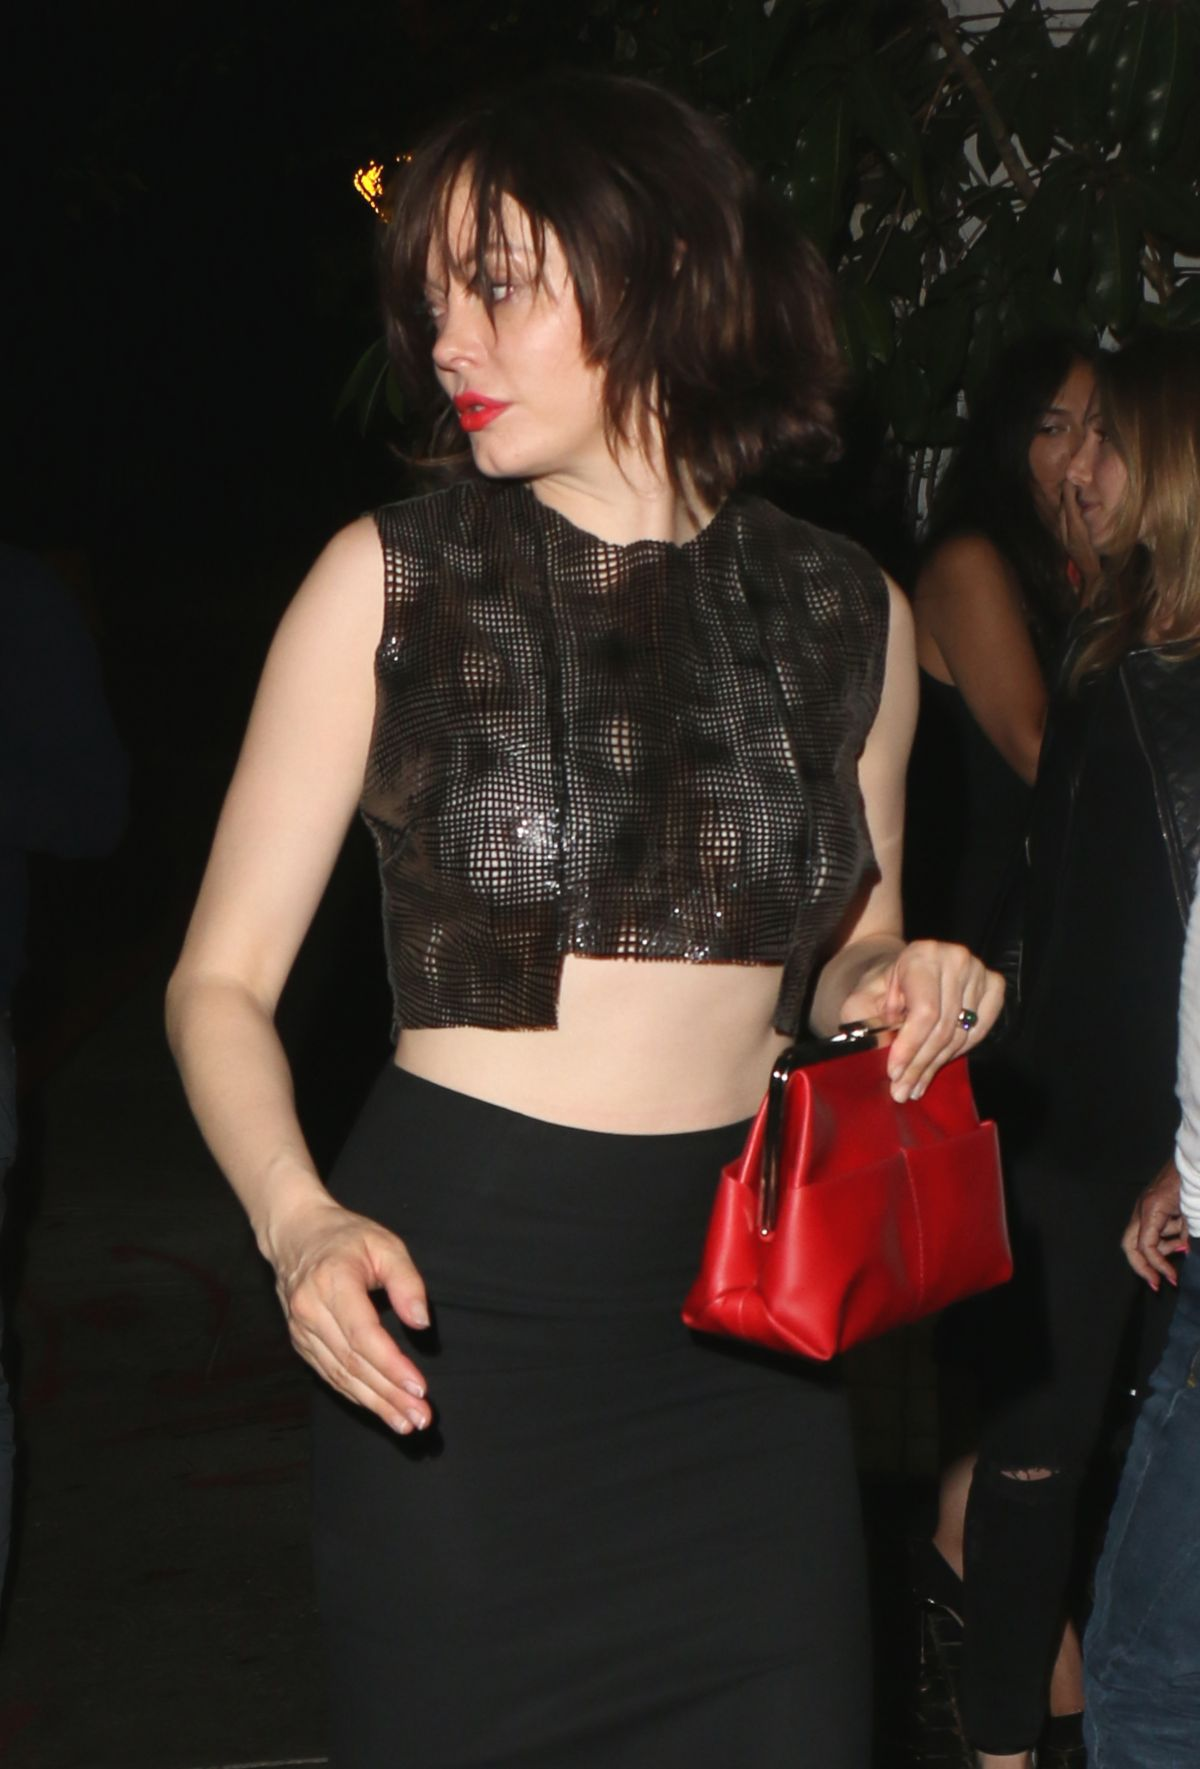 ROSE MCGOWAN at Chateau Marmont in West Hollywood